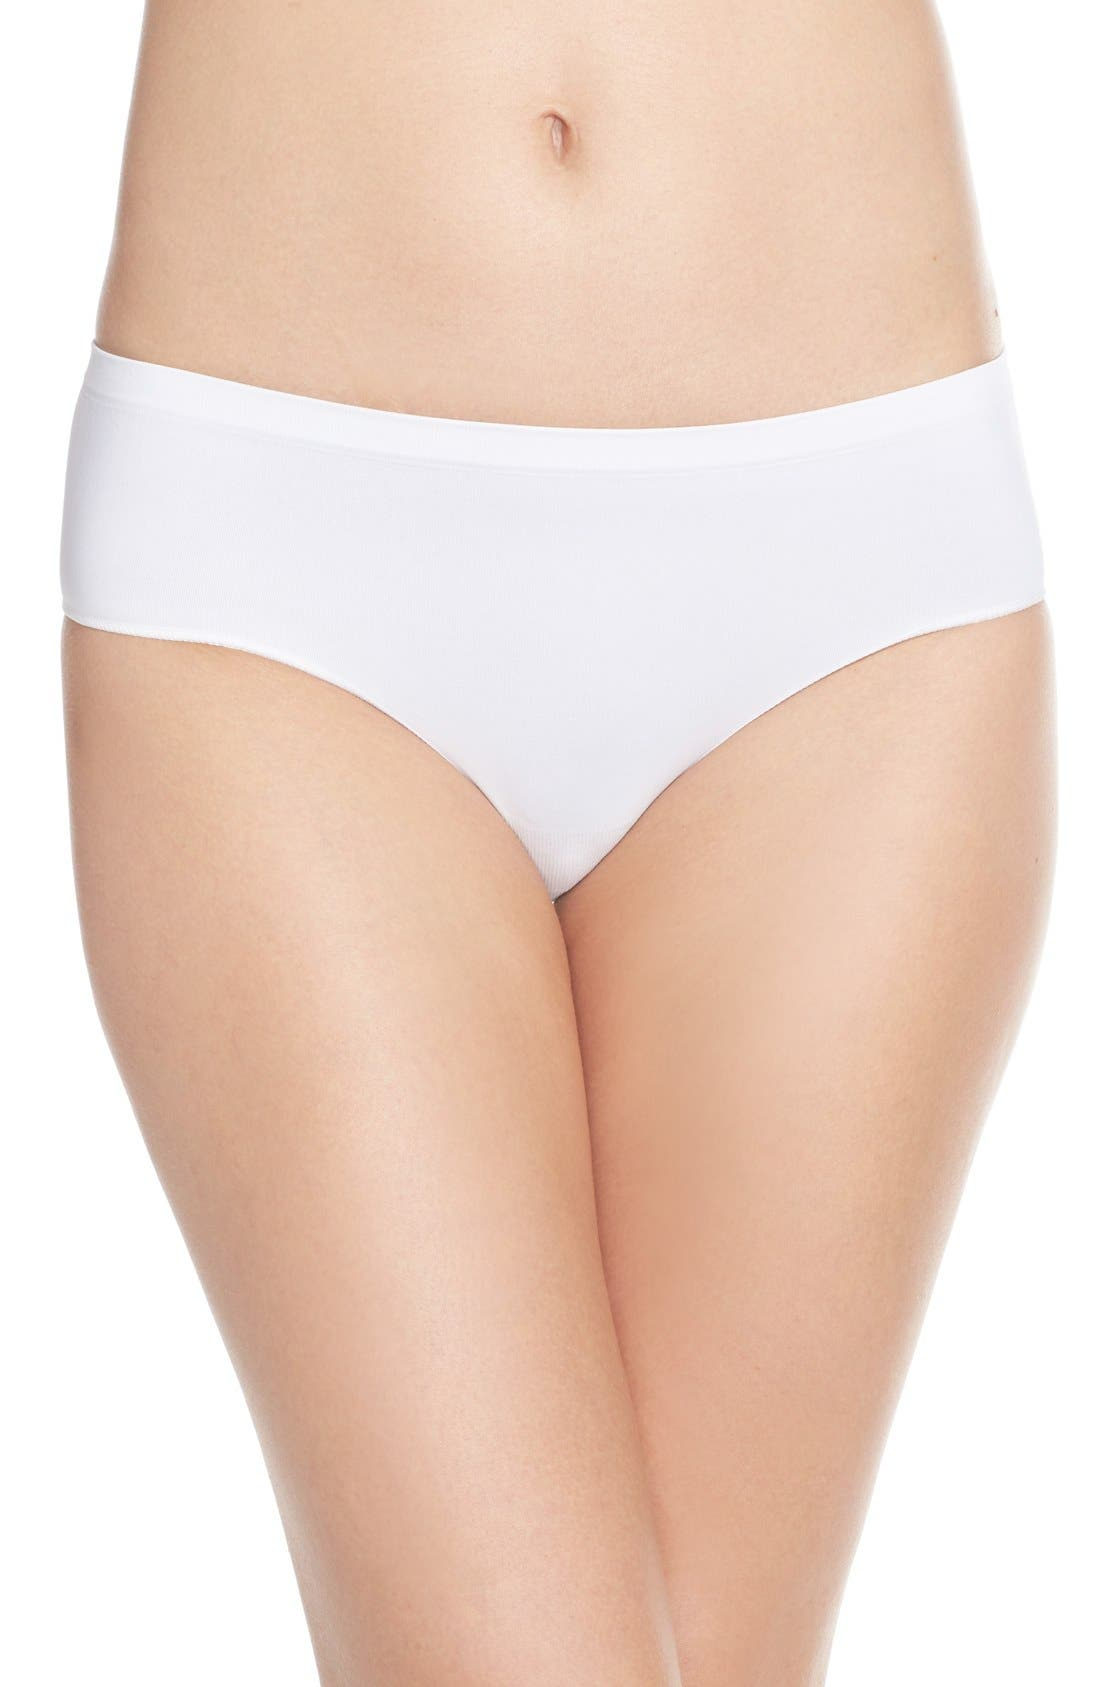 Main Image - Nordstrom Lingerie Seamless Hipster Panties (3 for $33)